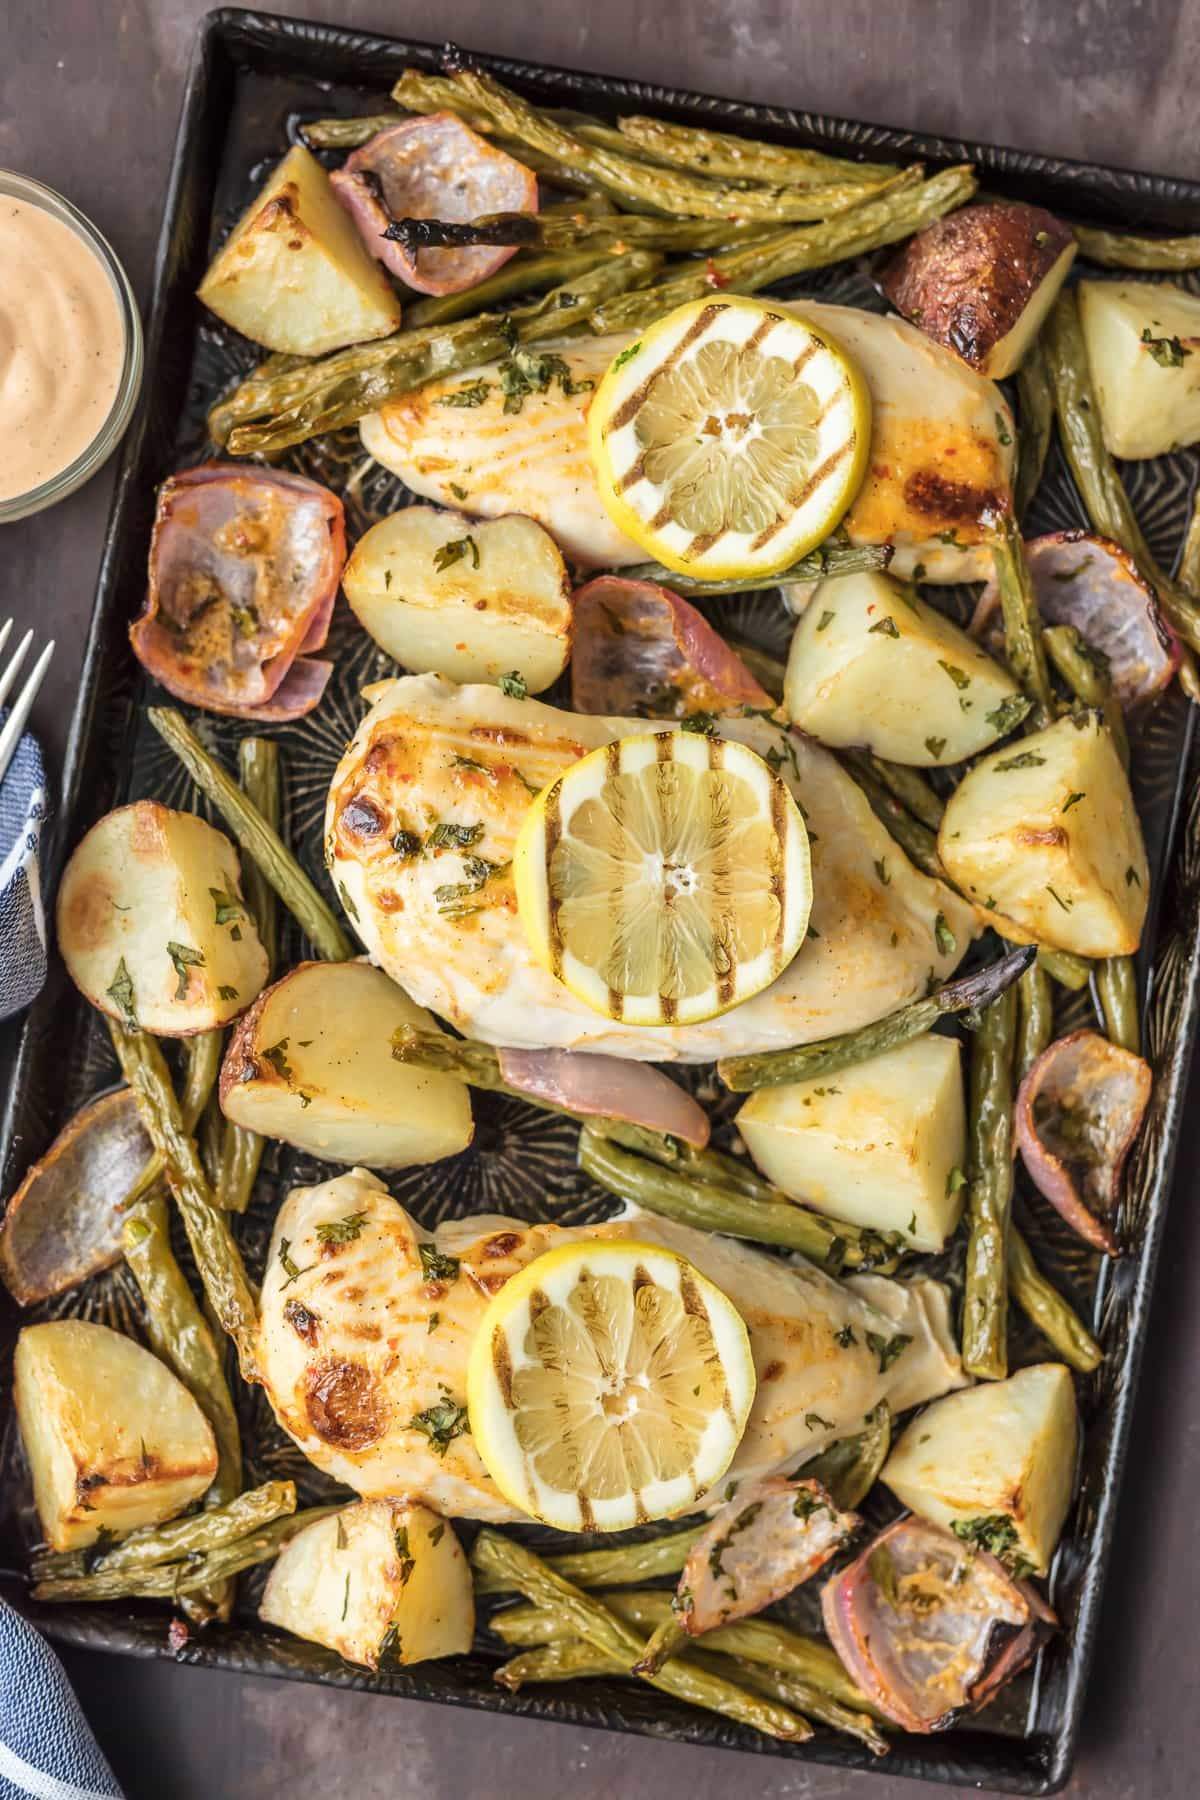 This ONE PAN CHILI LIME RANCH CHICKEN AND VEGETABLES is the absolute easiest healthy dinner recipe out there! Chicken, potatoes, green beans, and onion, tossed in ranch, all cook on one sheet pan. Delicious!